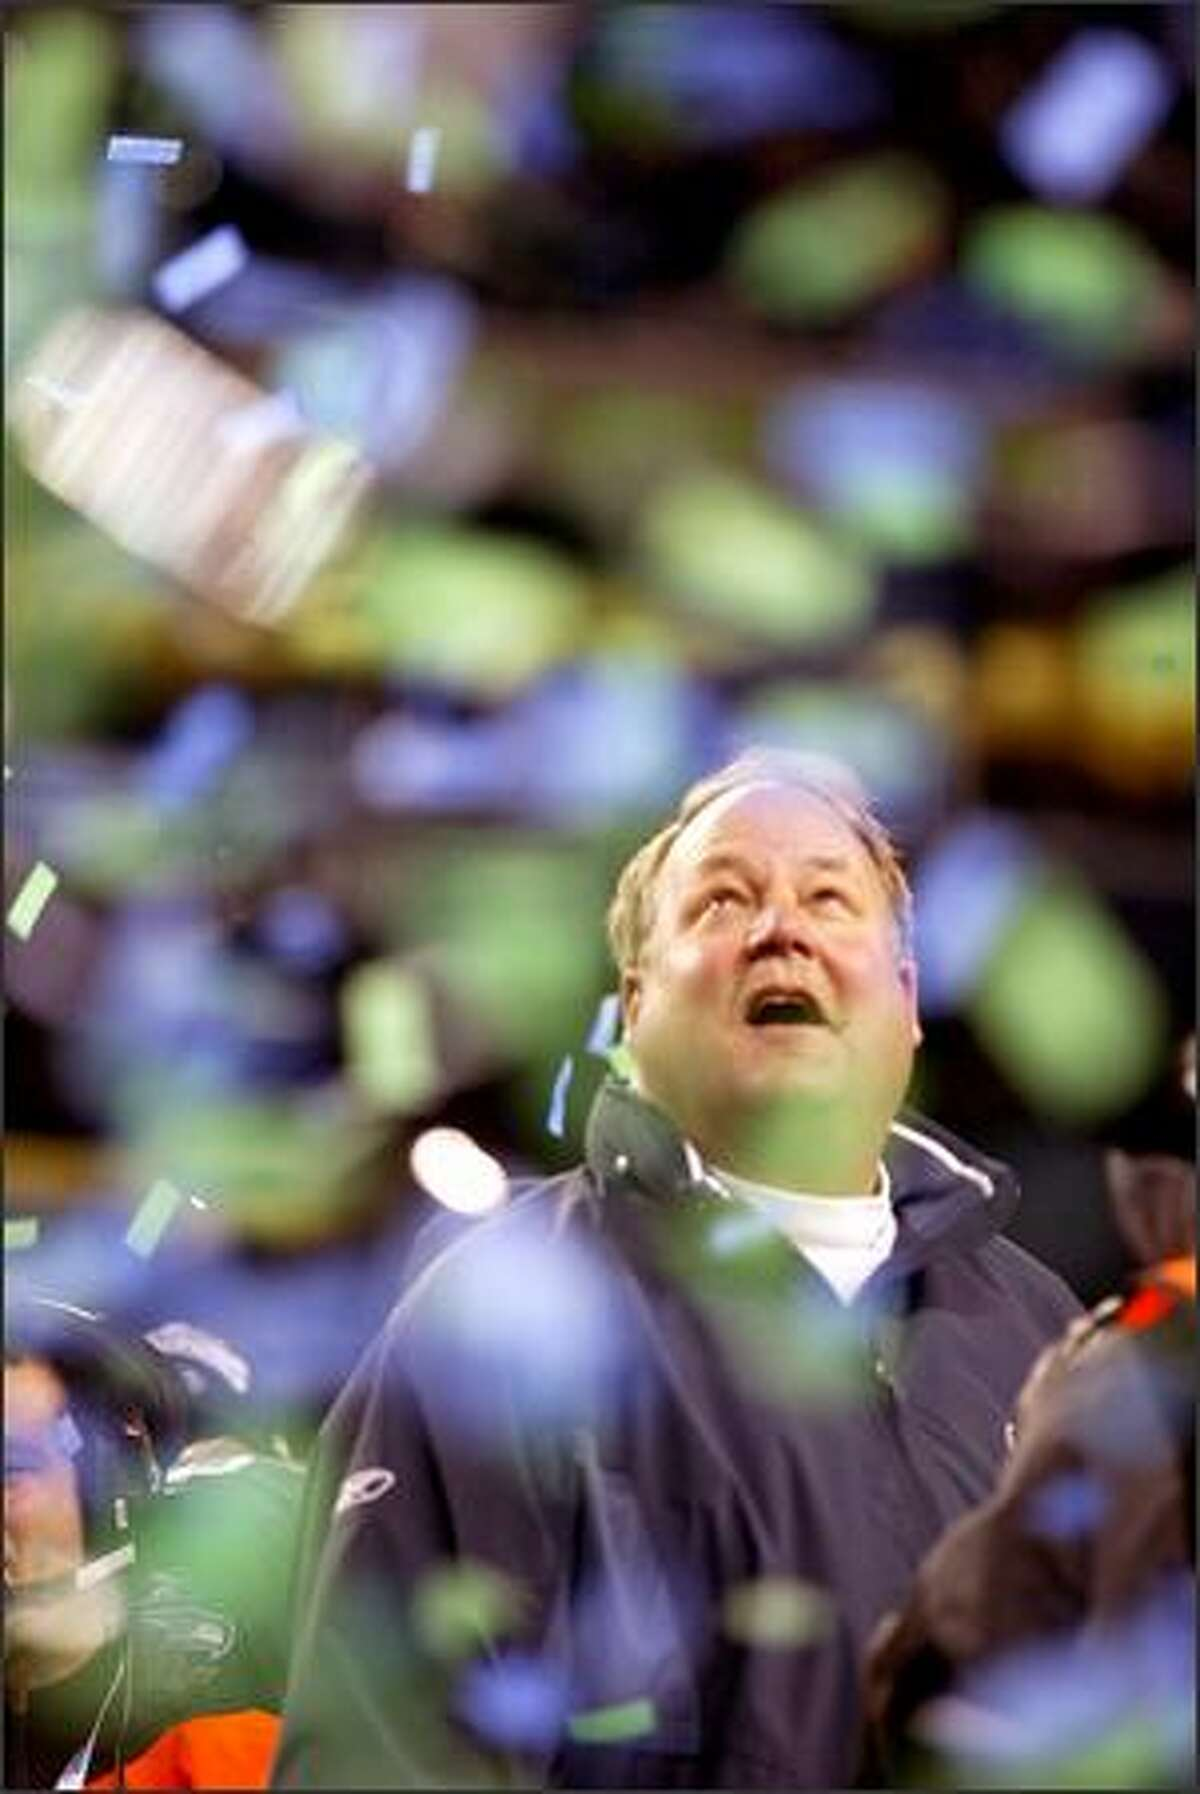 Coach Mike Holmgren watches as confetti falls during the trophy presentation ceremony after the Seahawks won the NFC Championship.